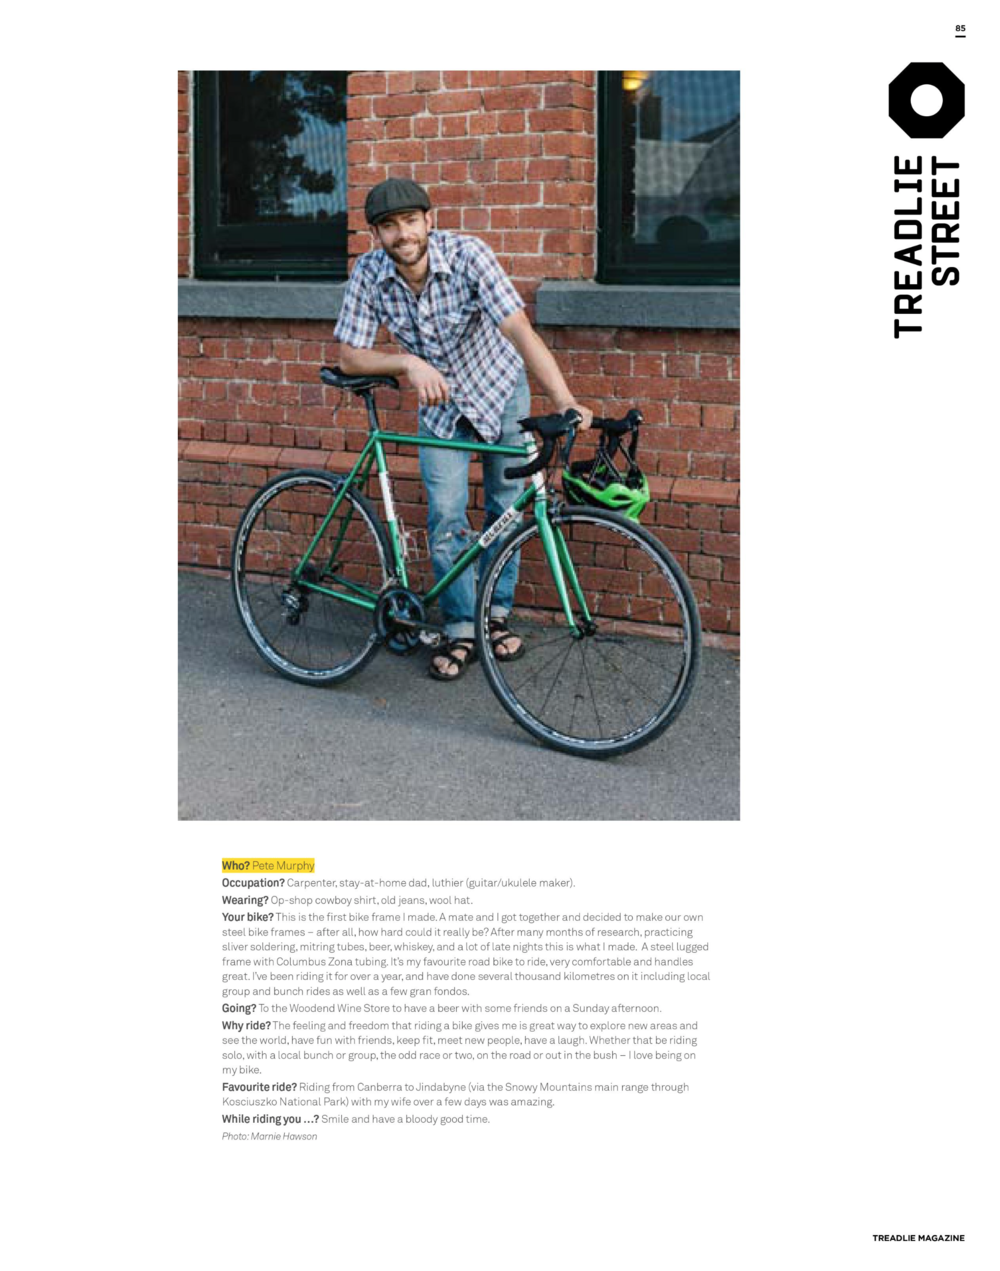 Marnie Hawson, Melbourne lifestyle photographer for Pete Murphy for Treadlie, Issue 22